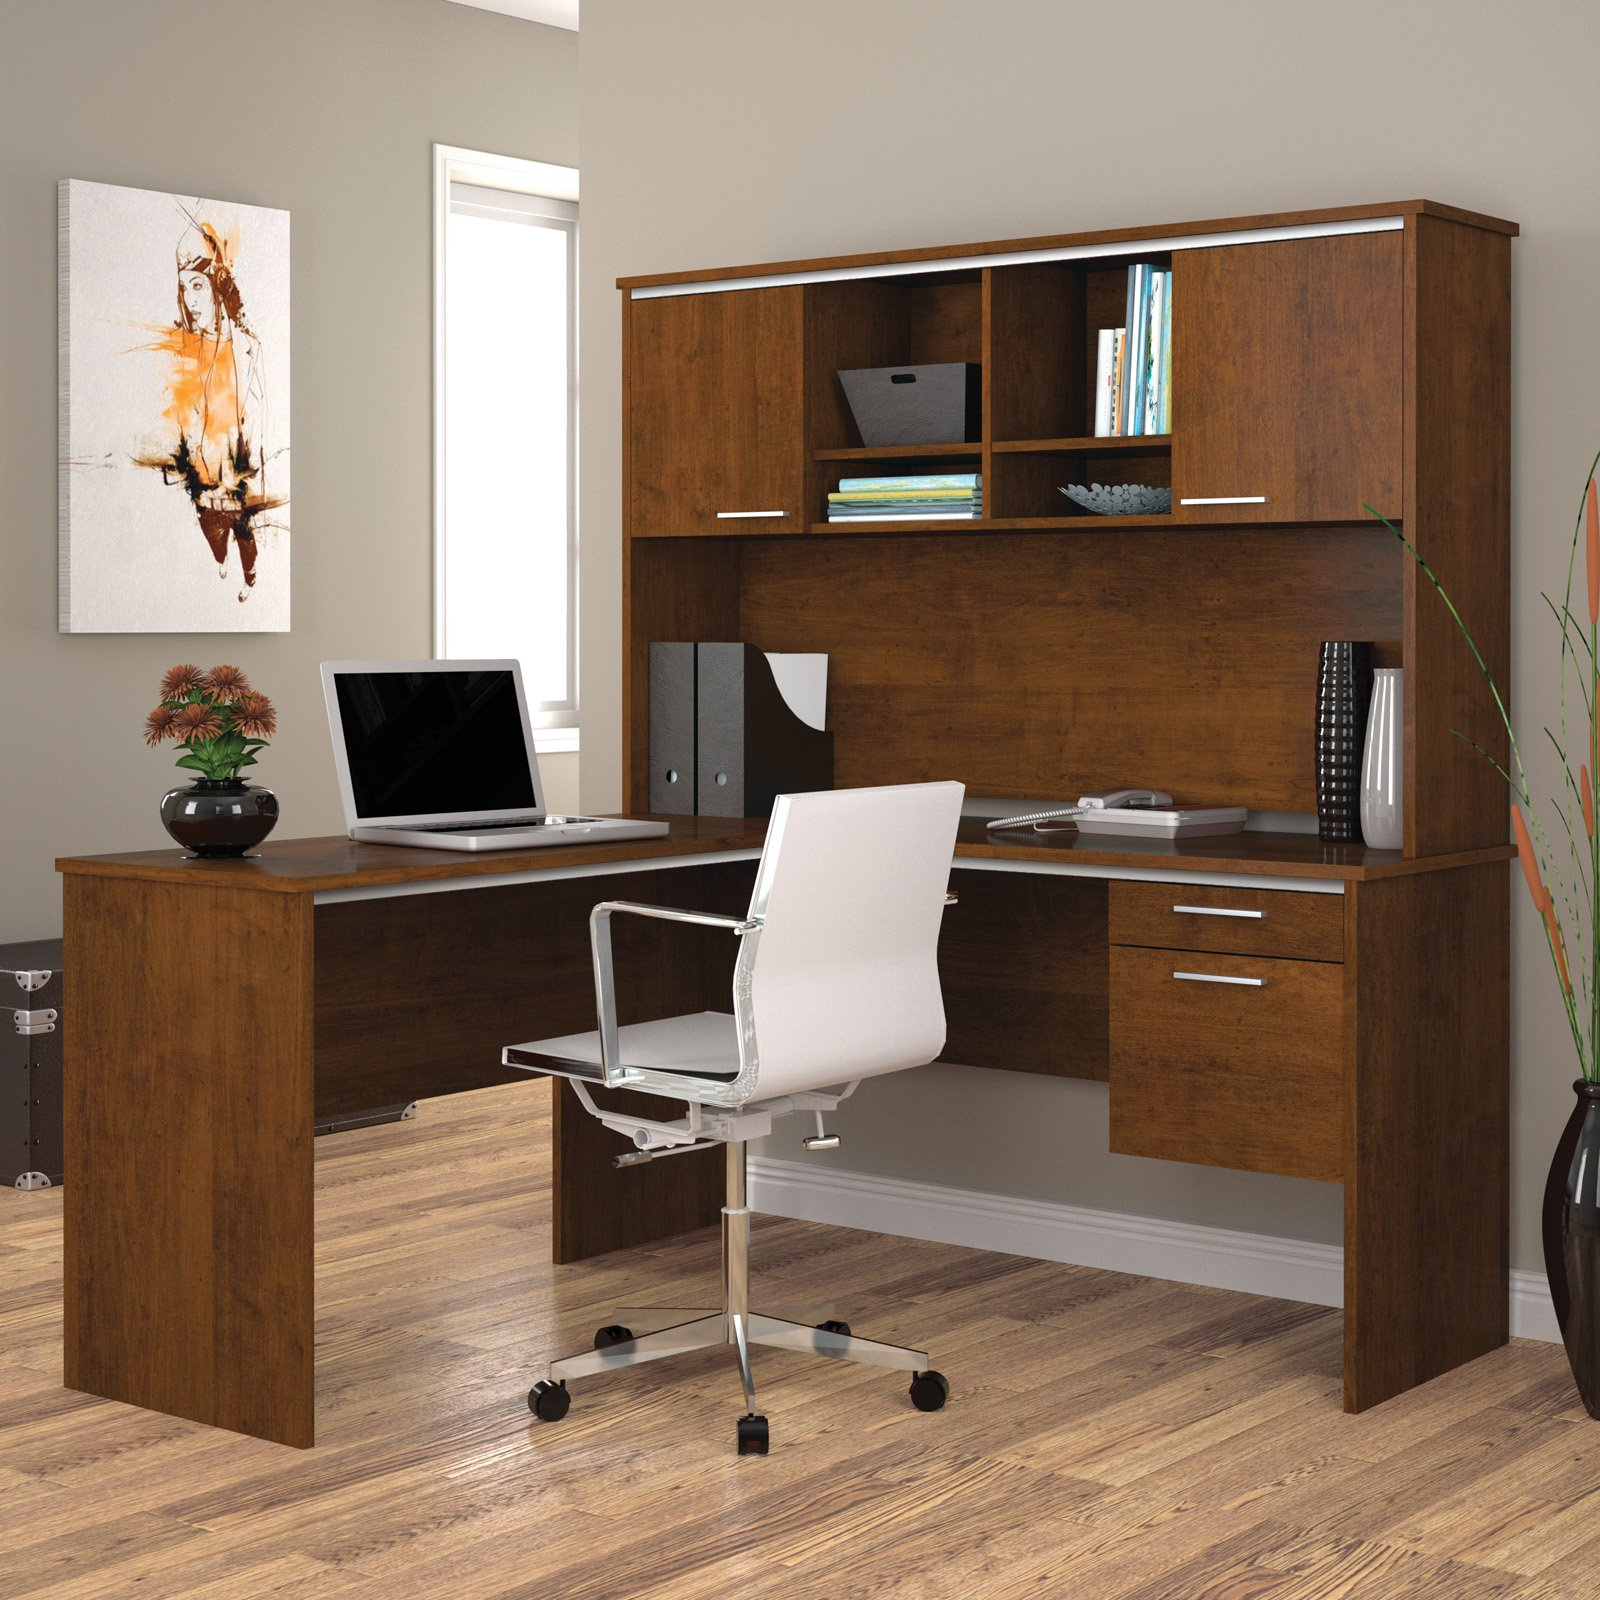 Bestar 90427-63 Flare L-Shaped Workstation Tuscany Brown by Bestar